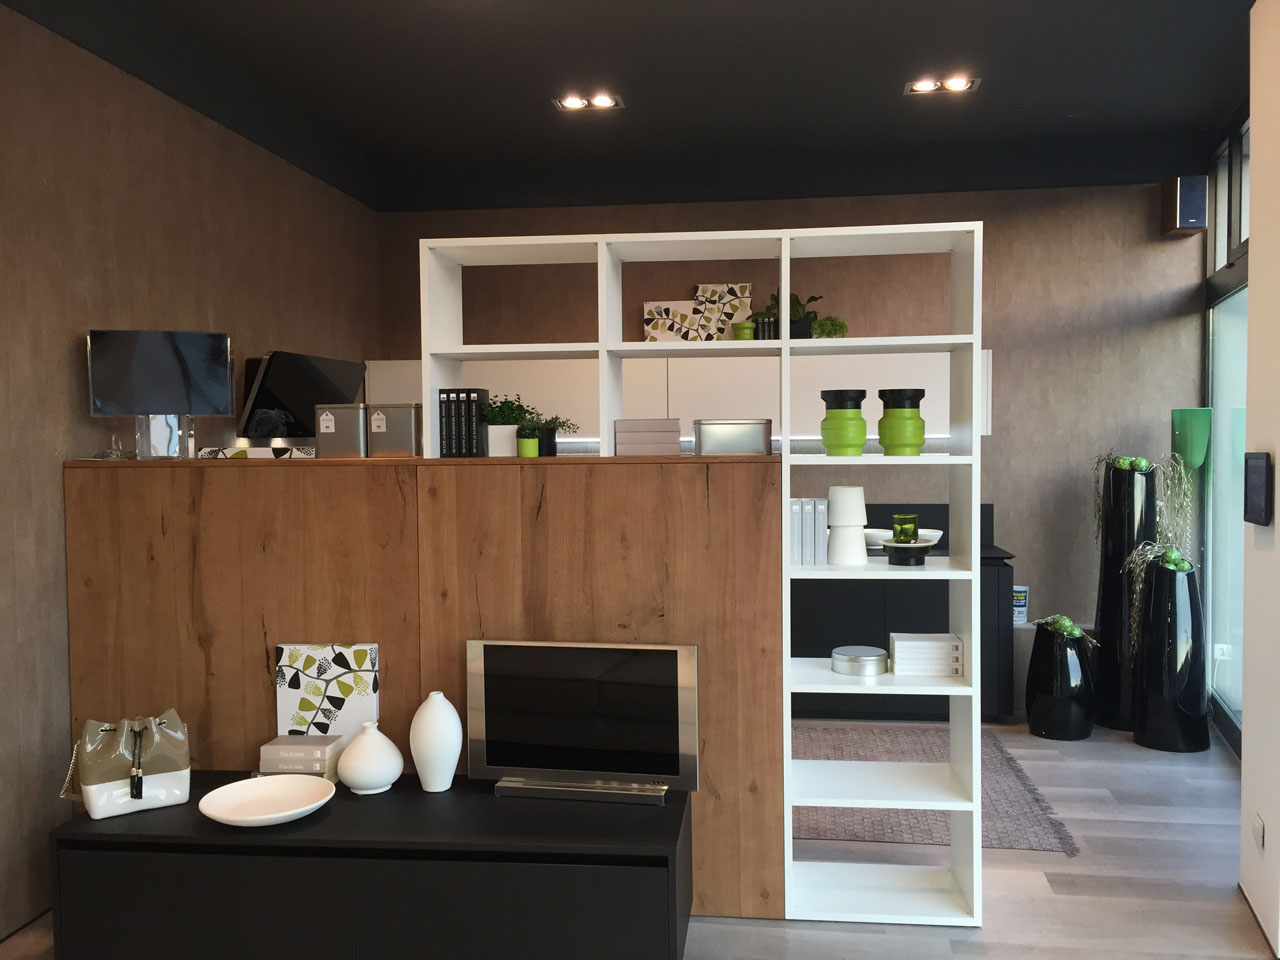 New sales outlet for the Cucine Lube and Creo Kitchens brand in ...